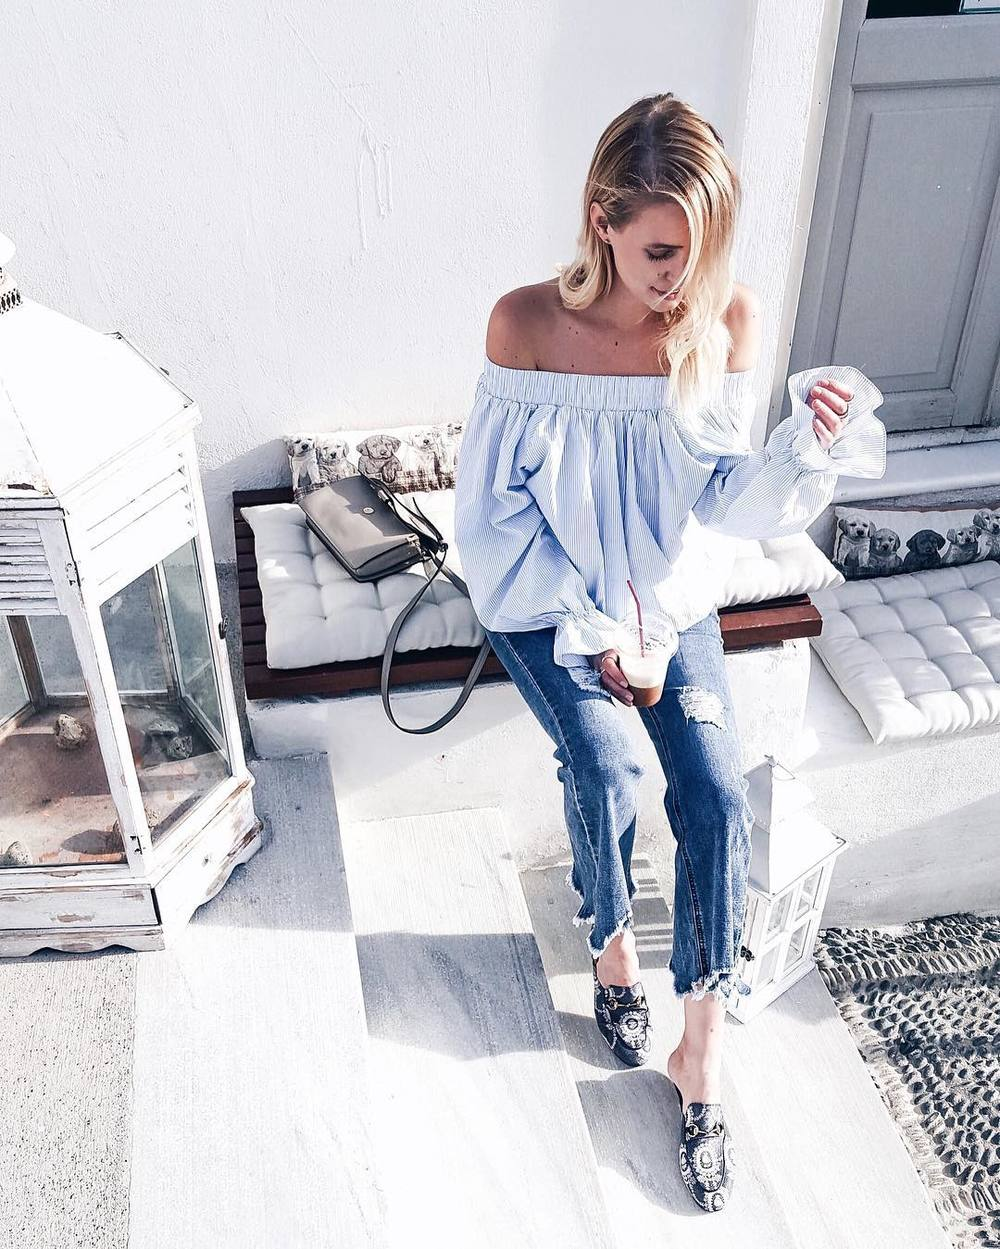 Big_sleeves__used_denim_and__gucci_slipper_to_explore_my_favorite_island_ever_____ohhsantorini__Santorini__greece_www.liketk.it2lu2f__IntimissimiLovesSantorini_by_ohhcouture.jpg